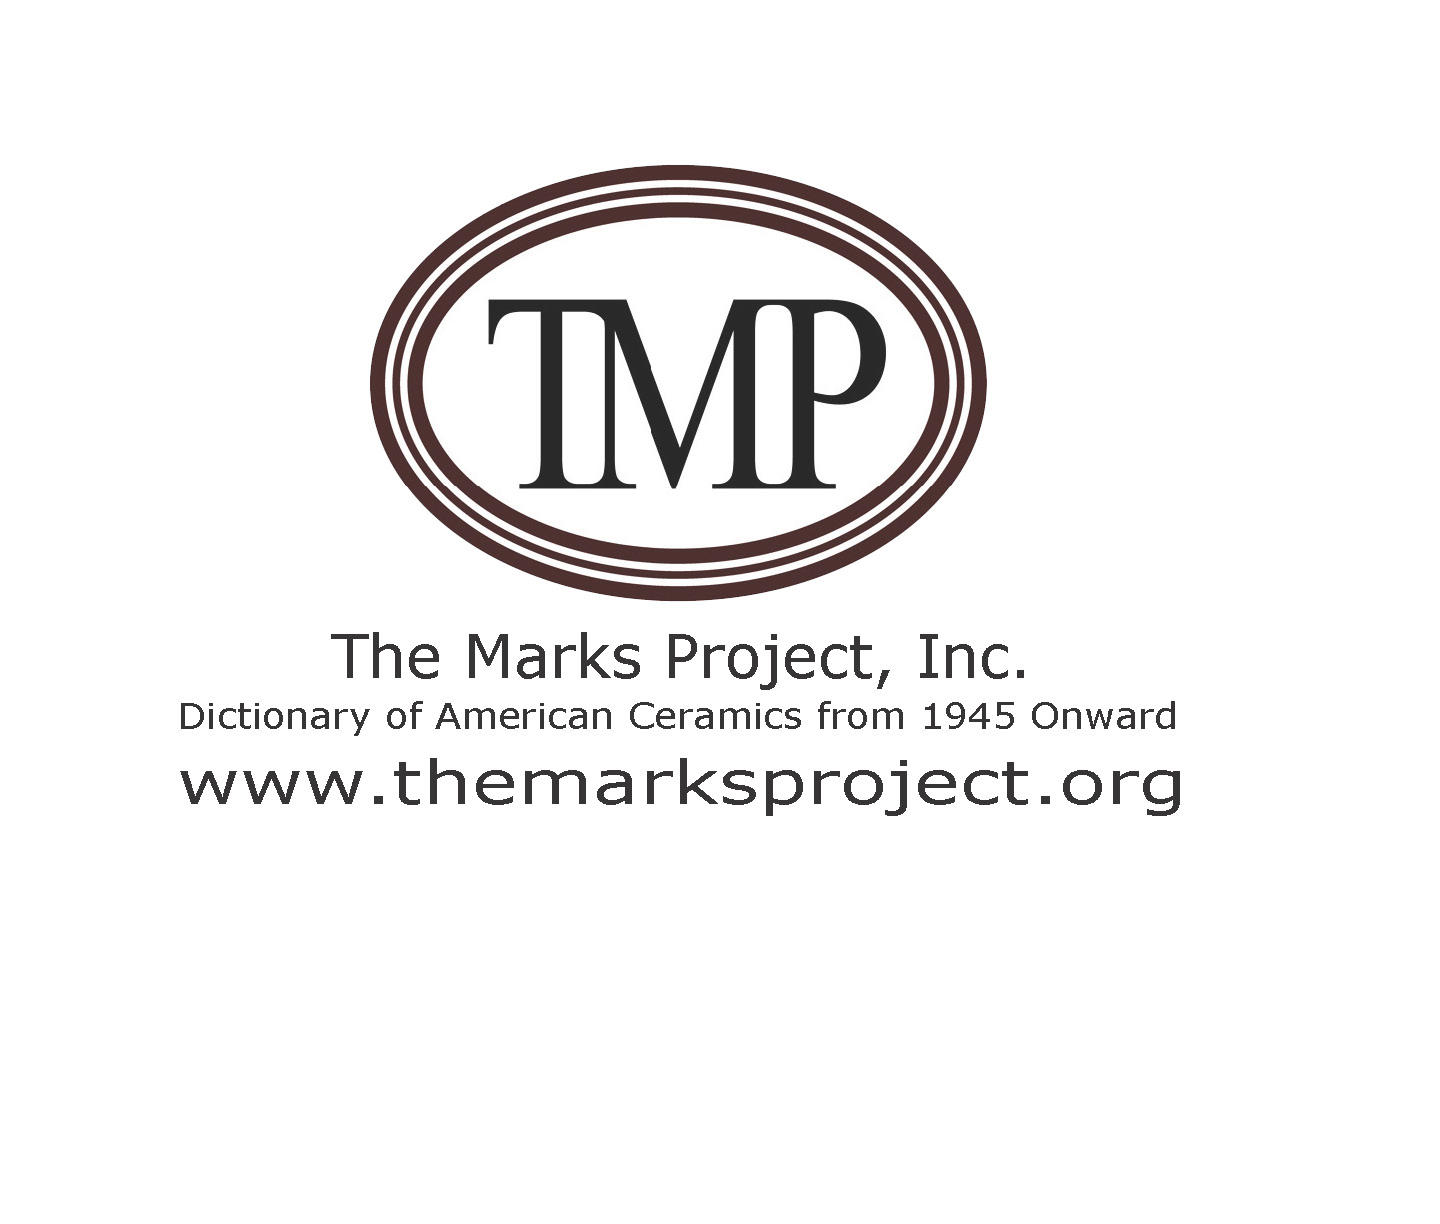 The Marks Project logo